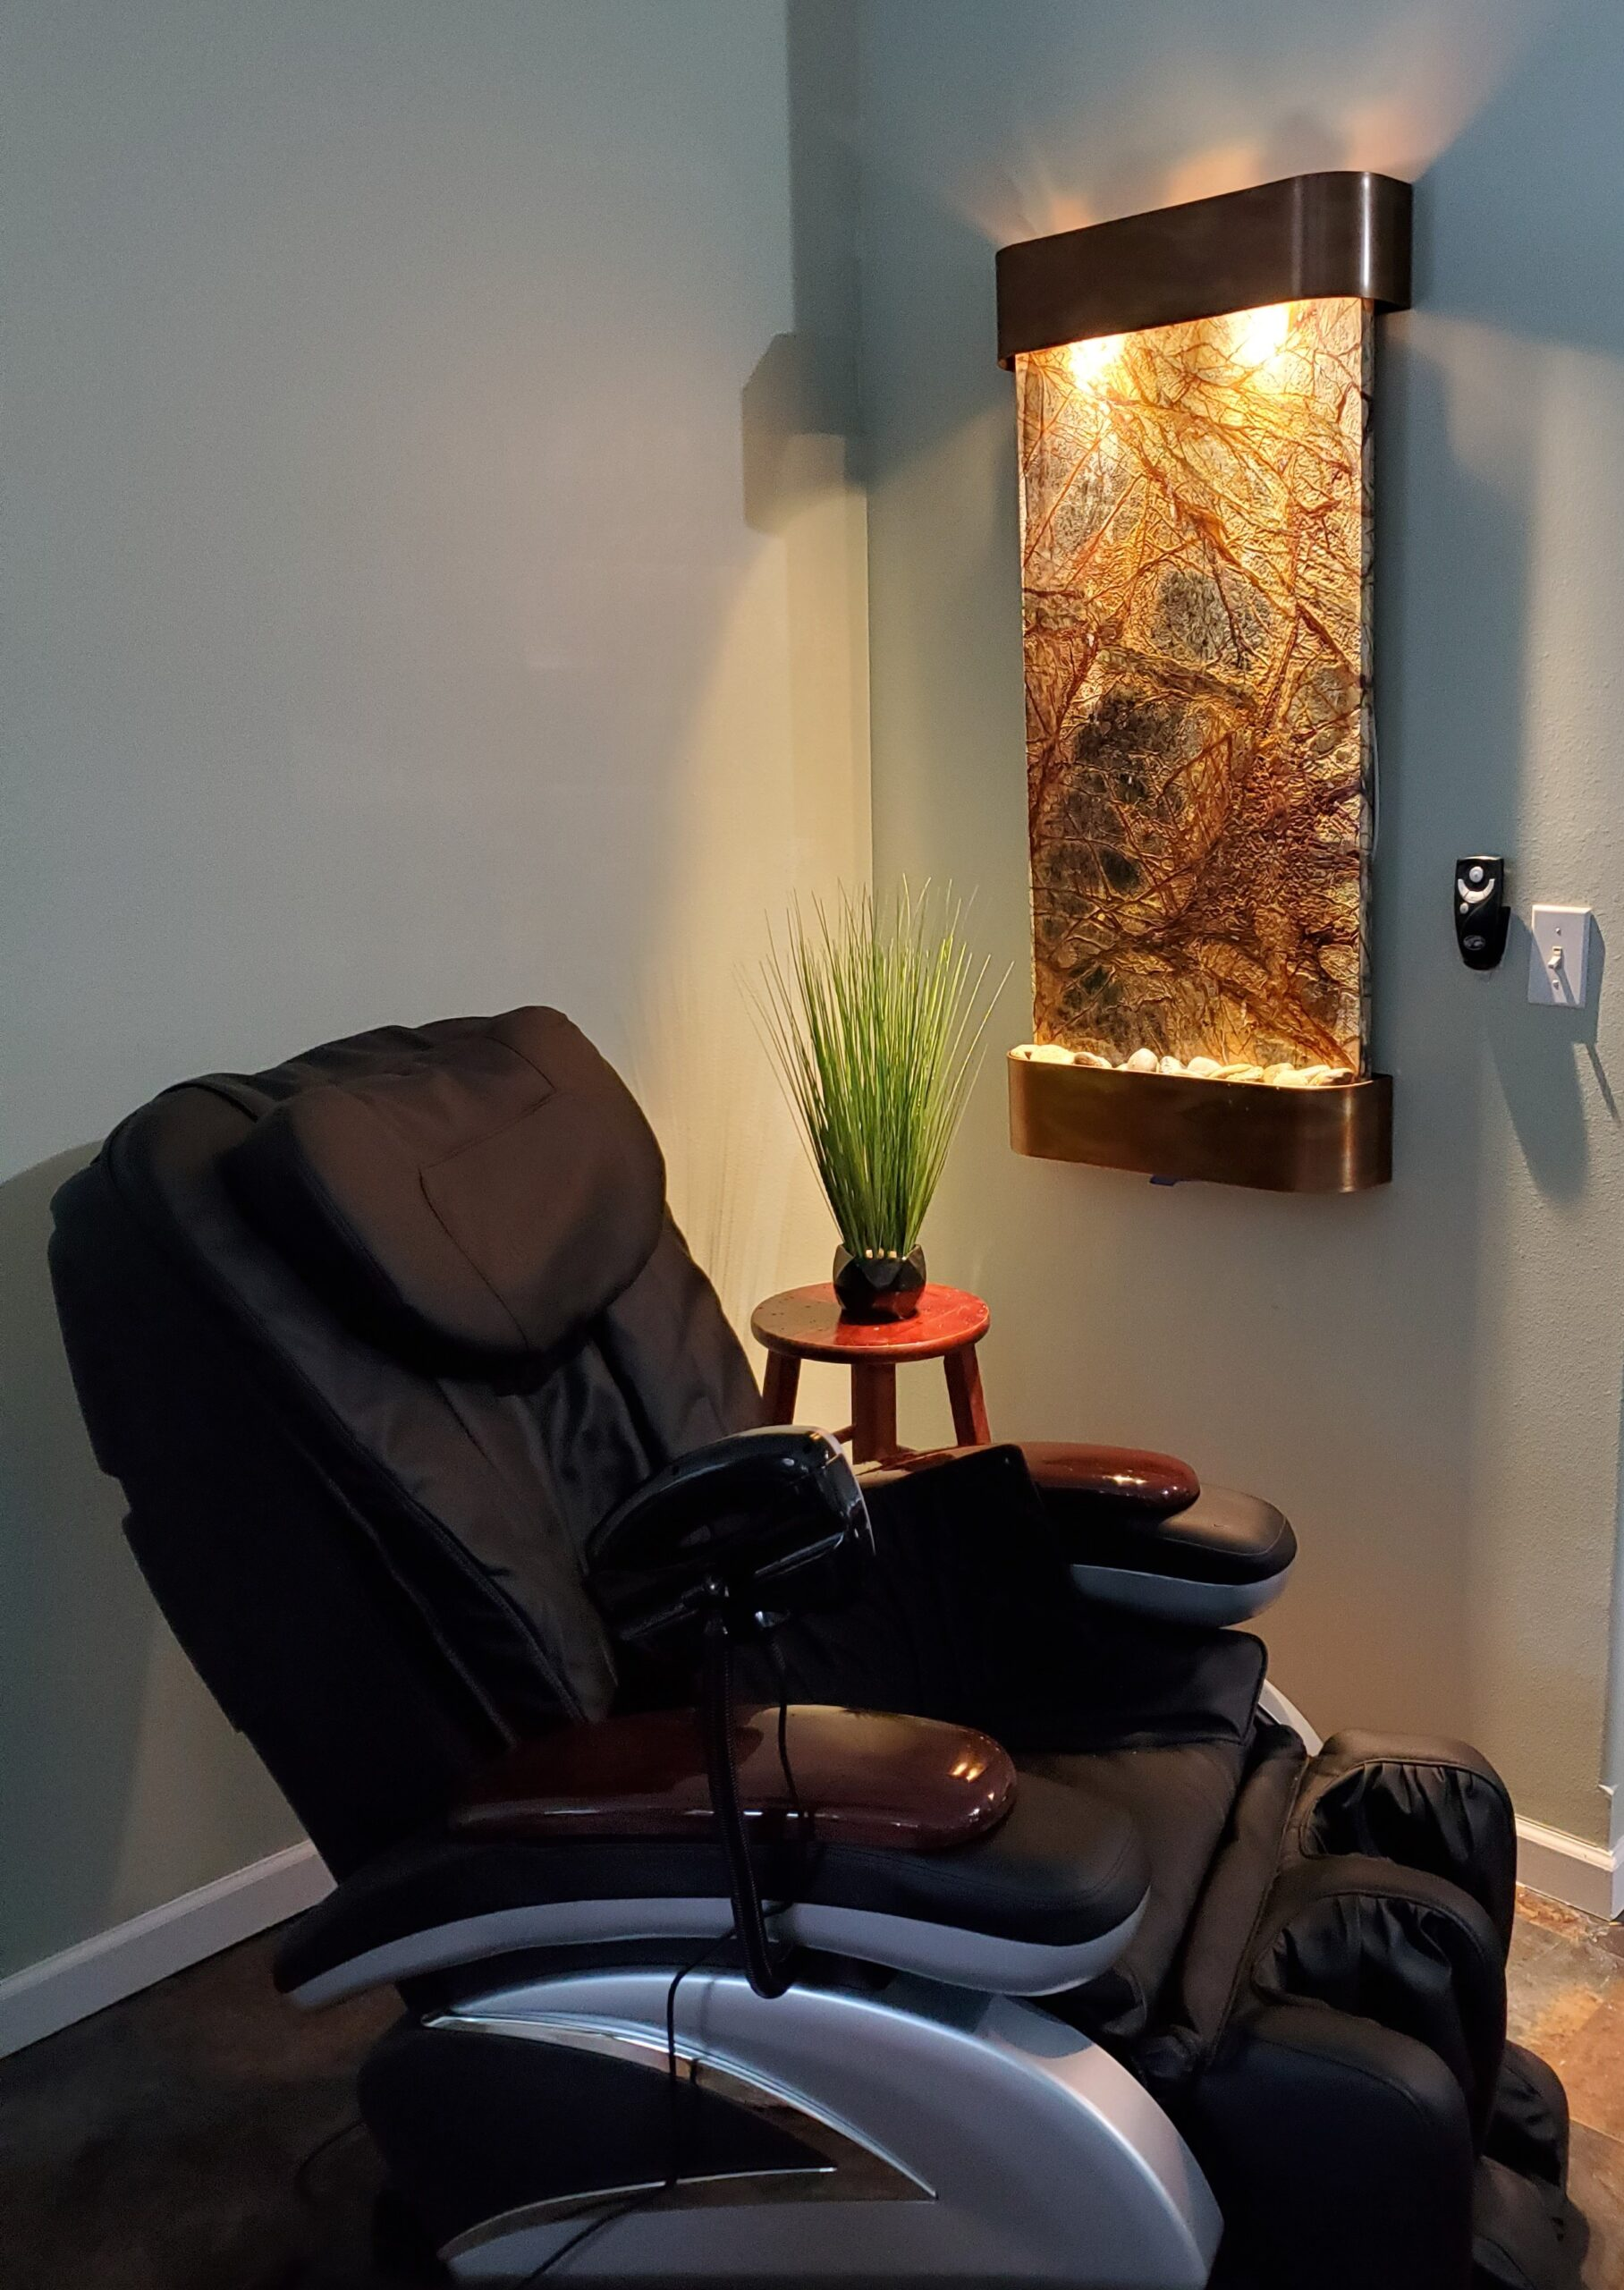 Waterfall and full body massage chair